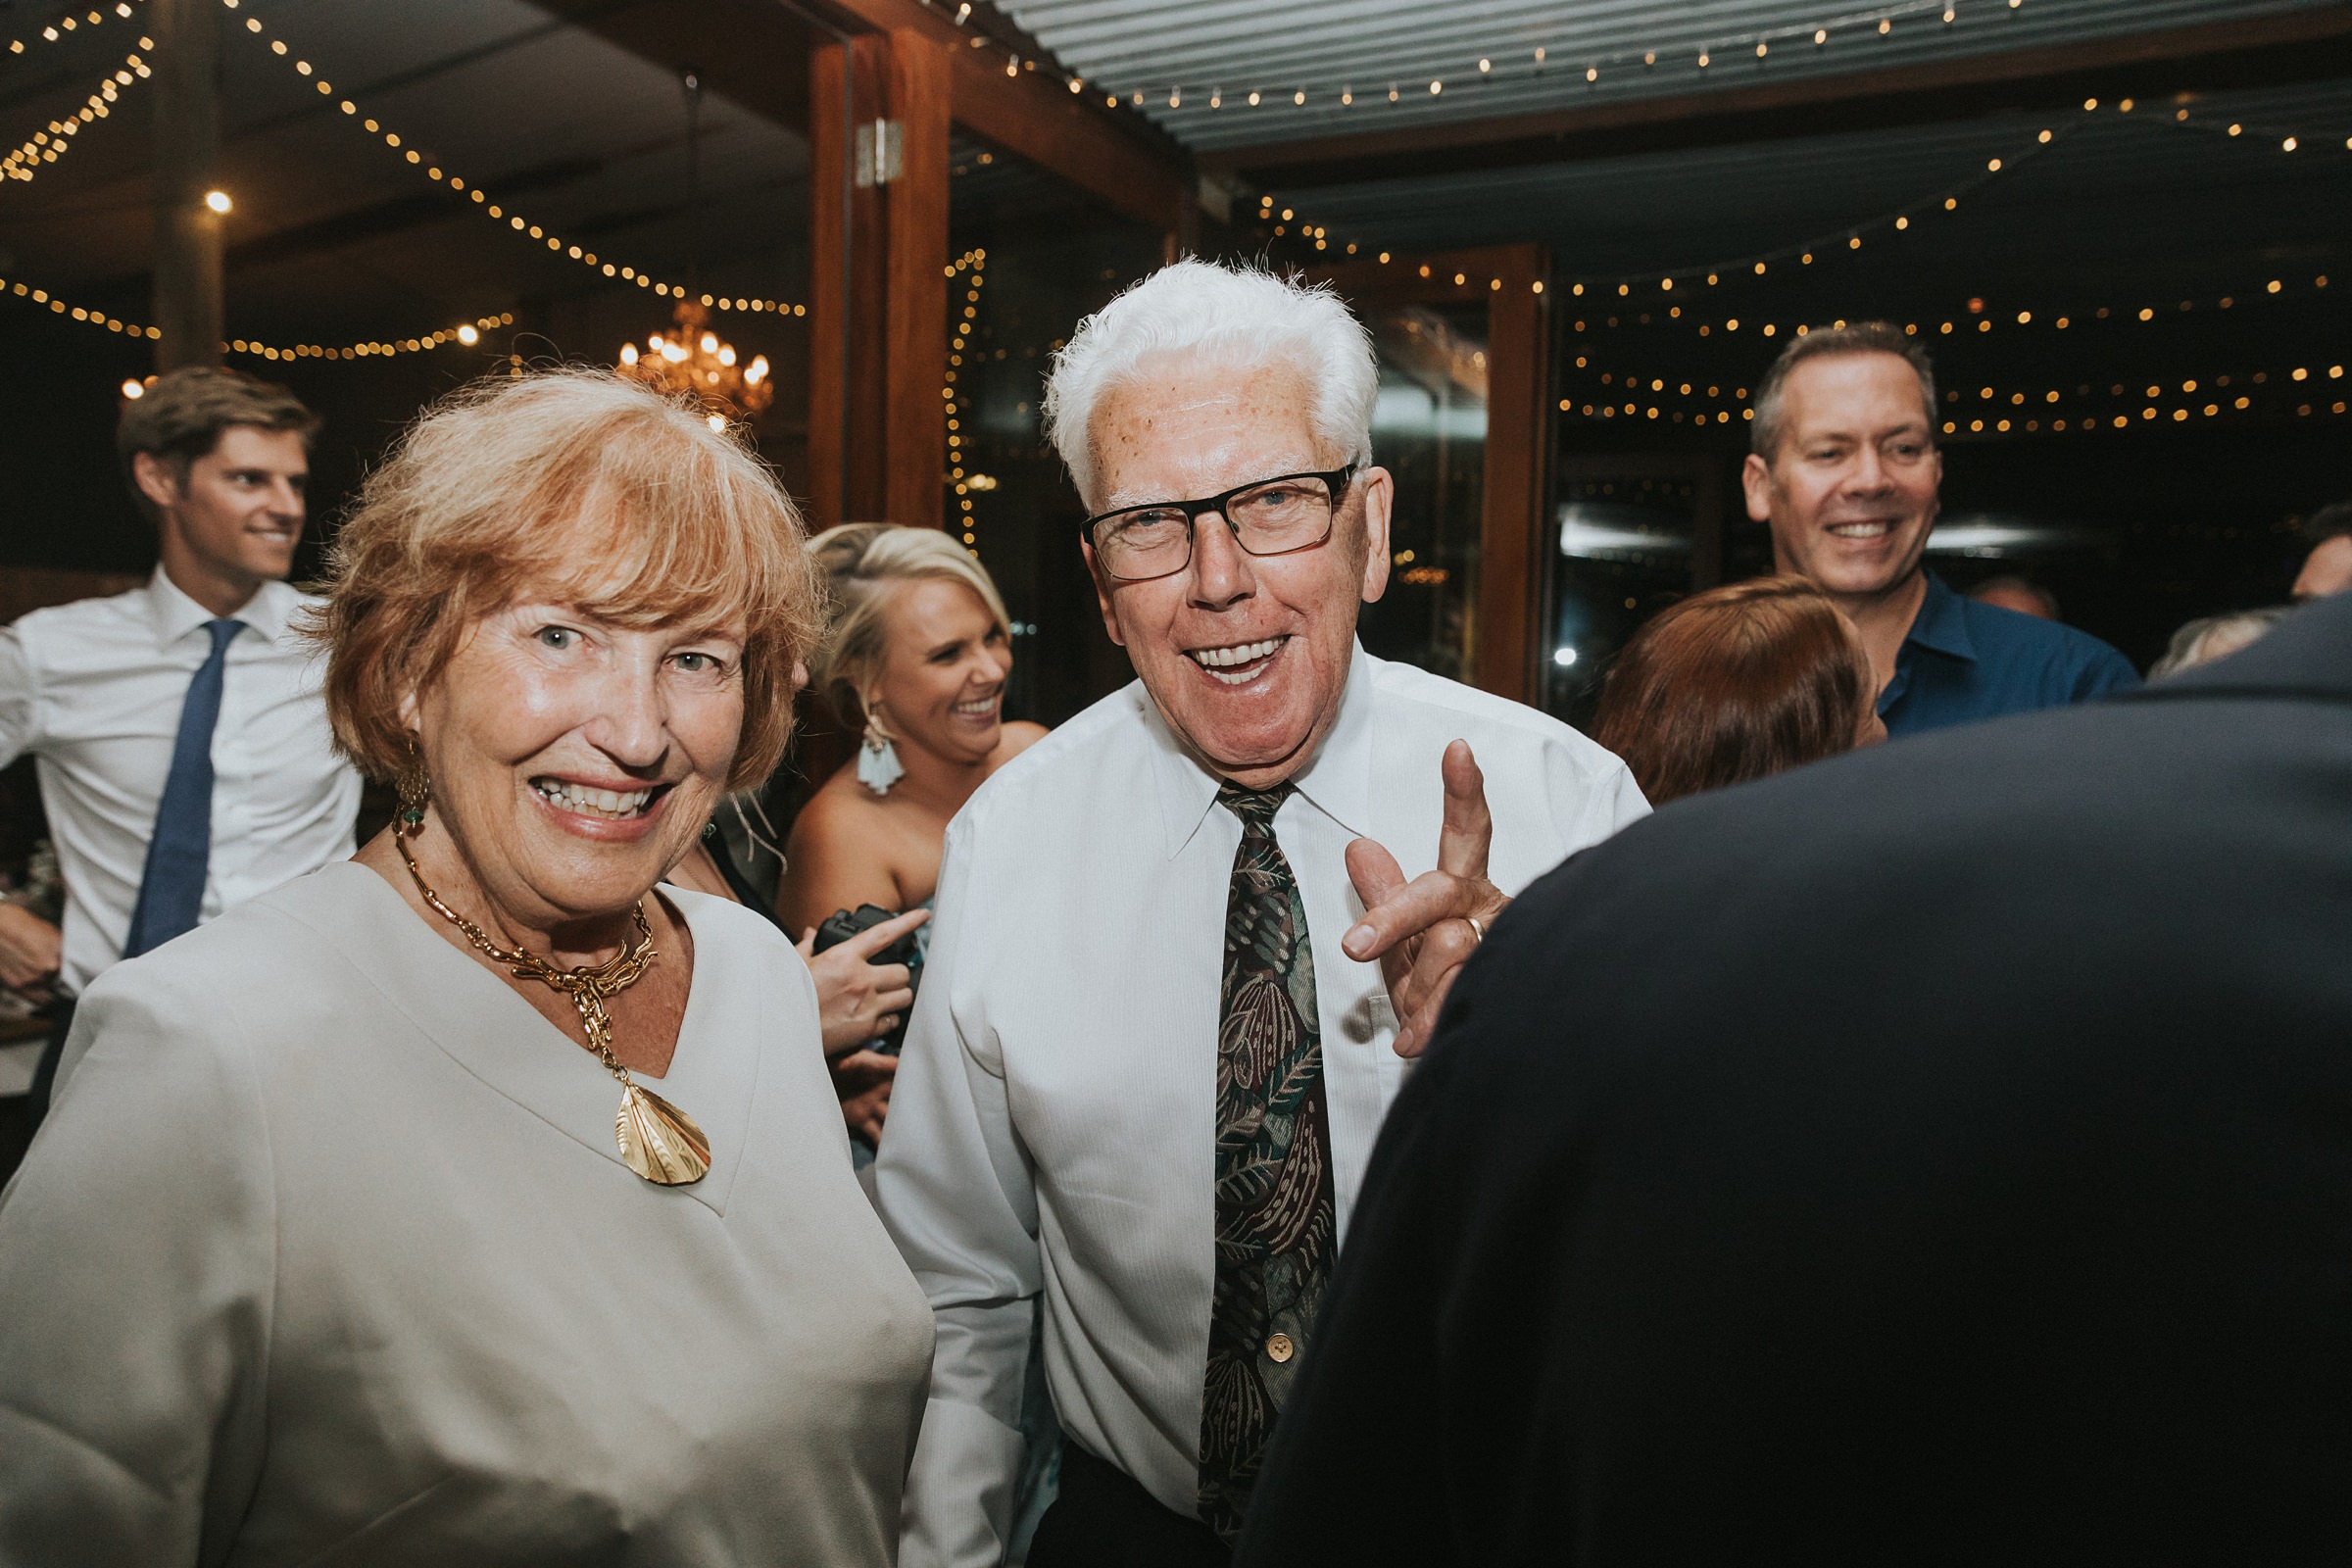 grandparents rip up the dance floor